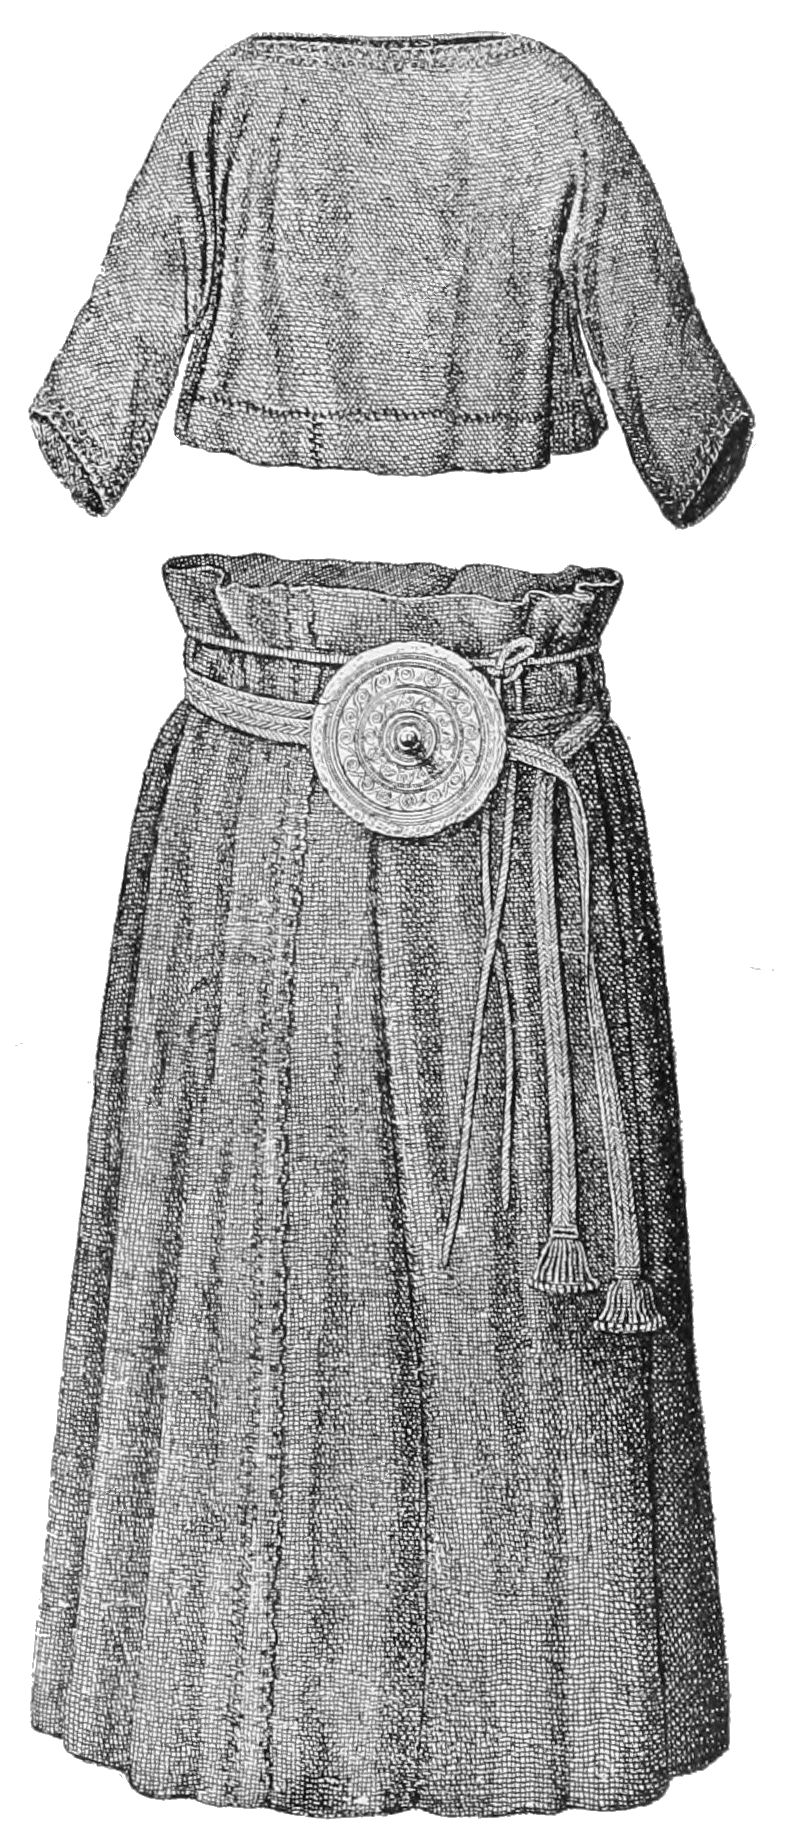 PSM V47 D027 Garments of the bronze age.jpg